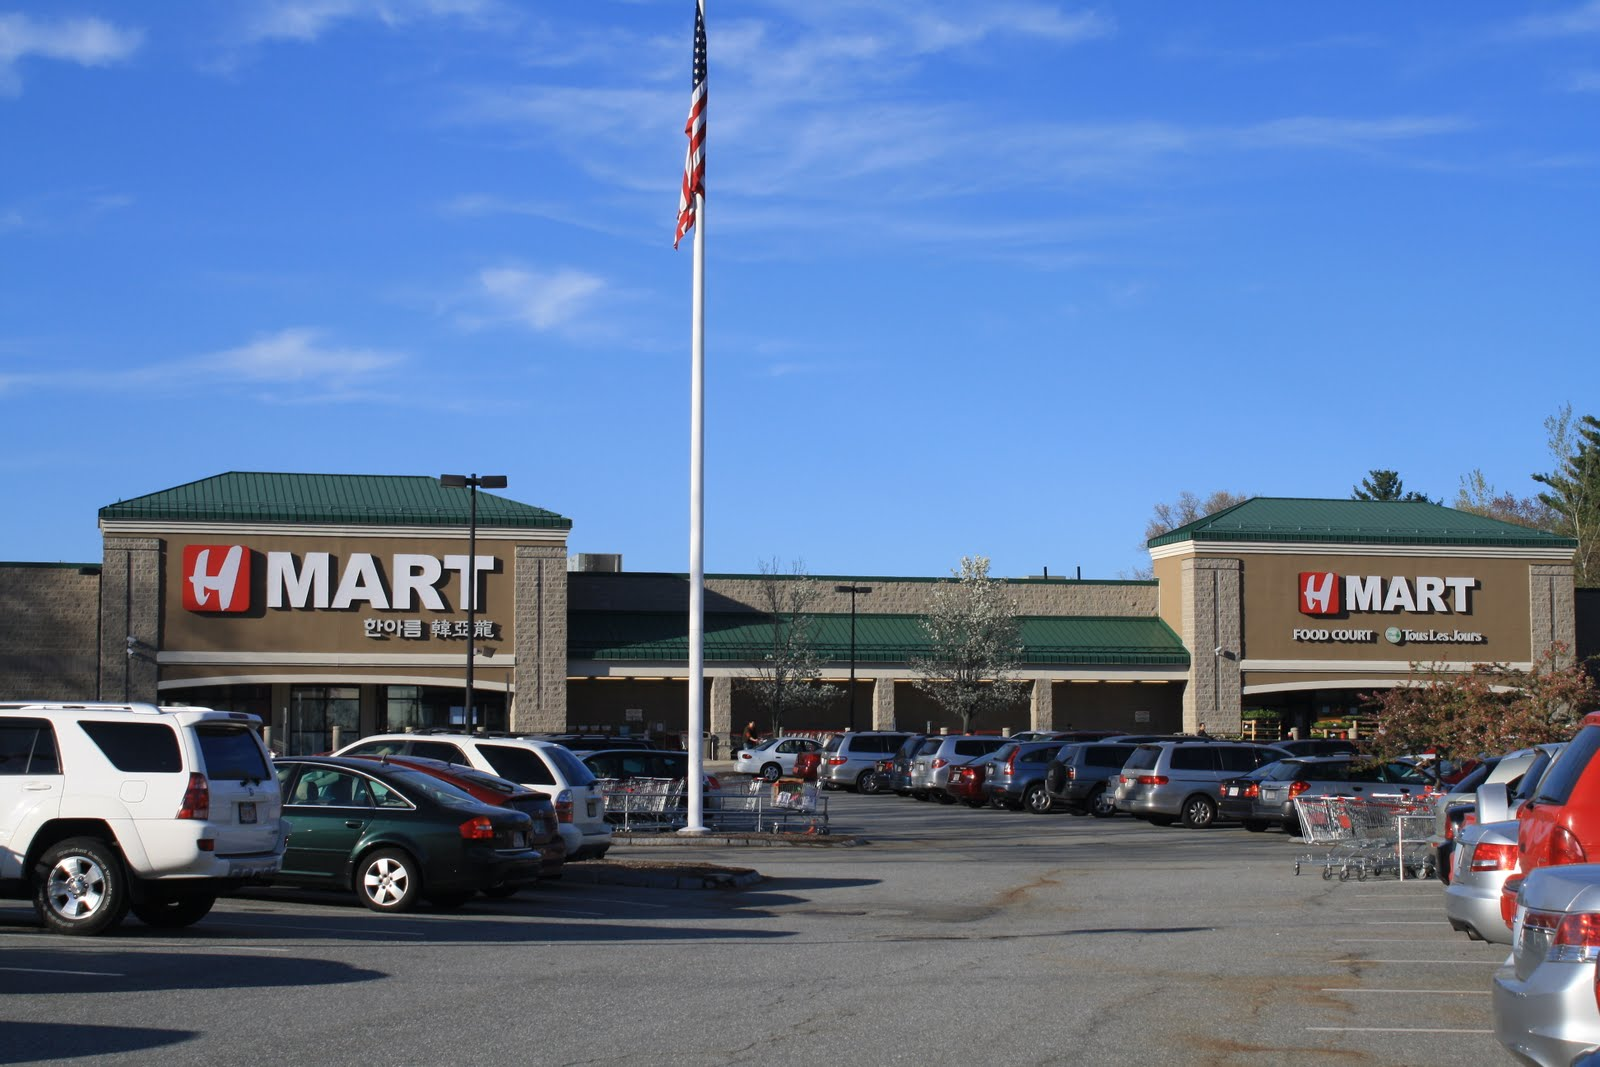 H Mart Yum The Daily Peanuts